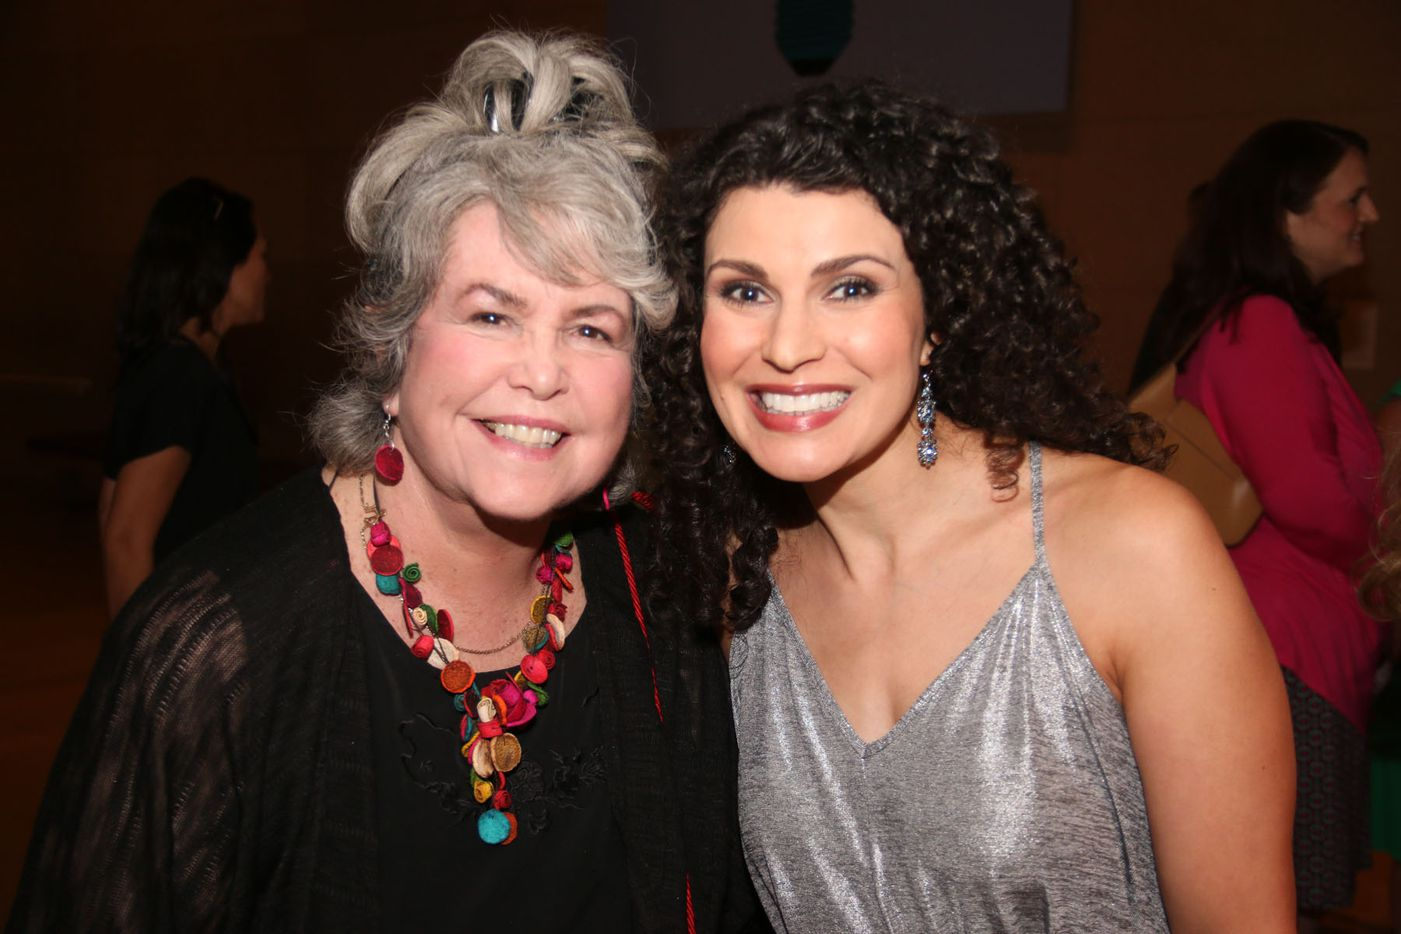 Monica Berry (right) was a participant in the Oral Fixation  best of season four at the Dallas Museum of Art on August 15, 2015